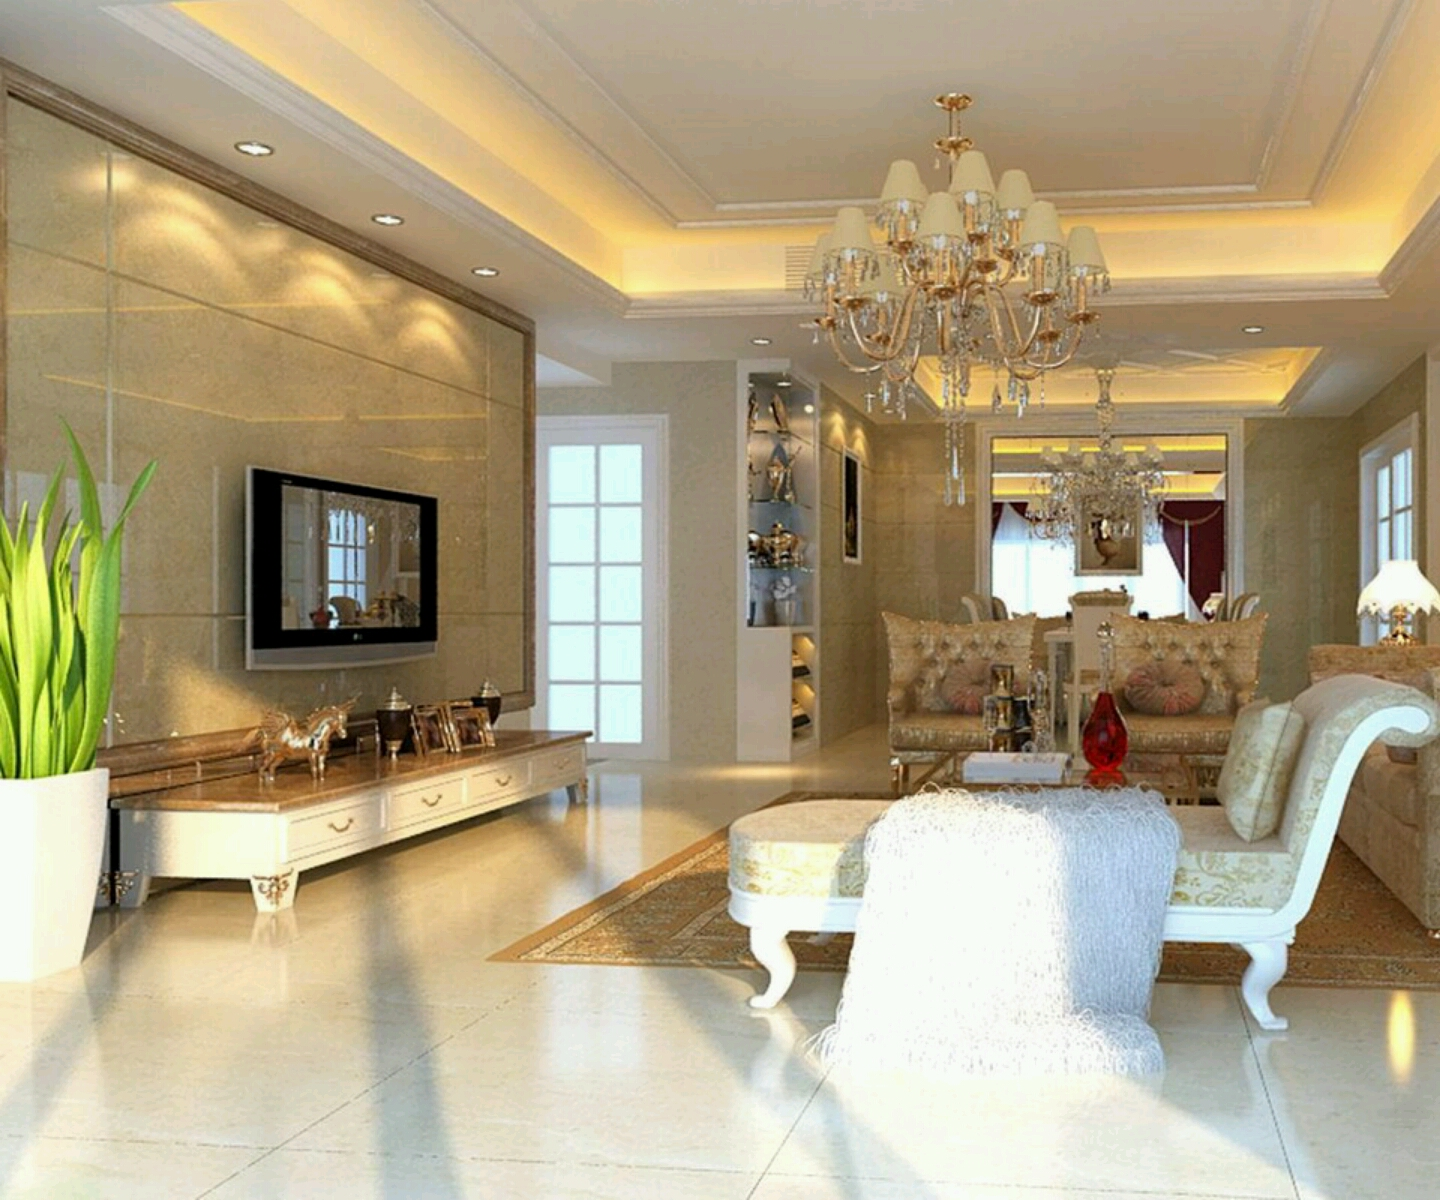 New home designs latest luxury homes interior decoration for Living room design ideas